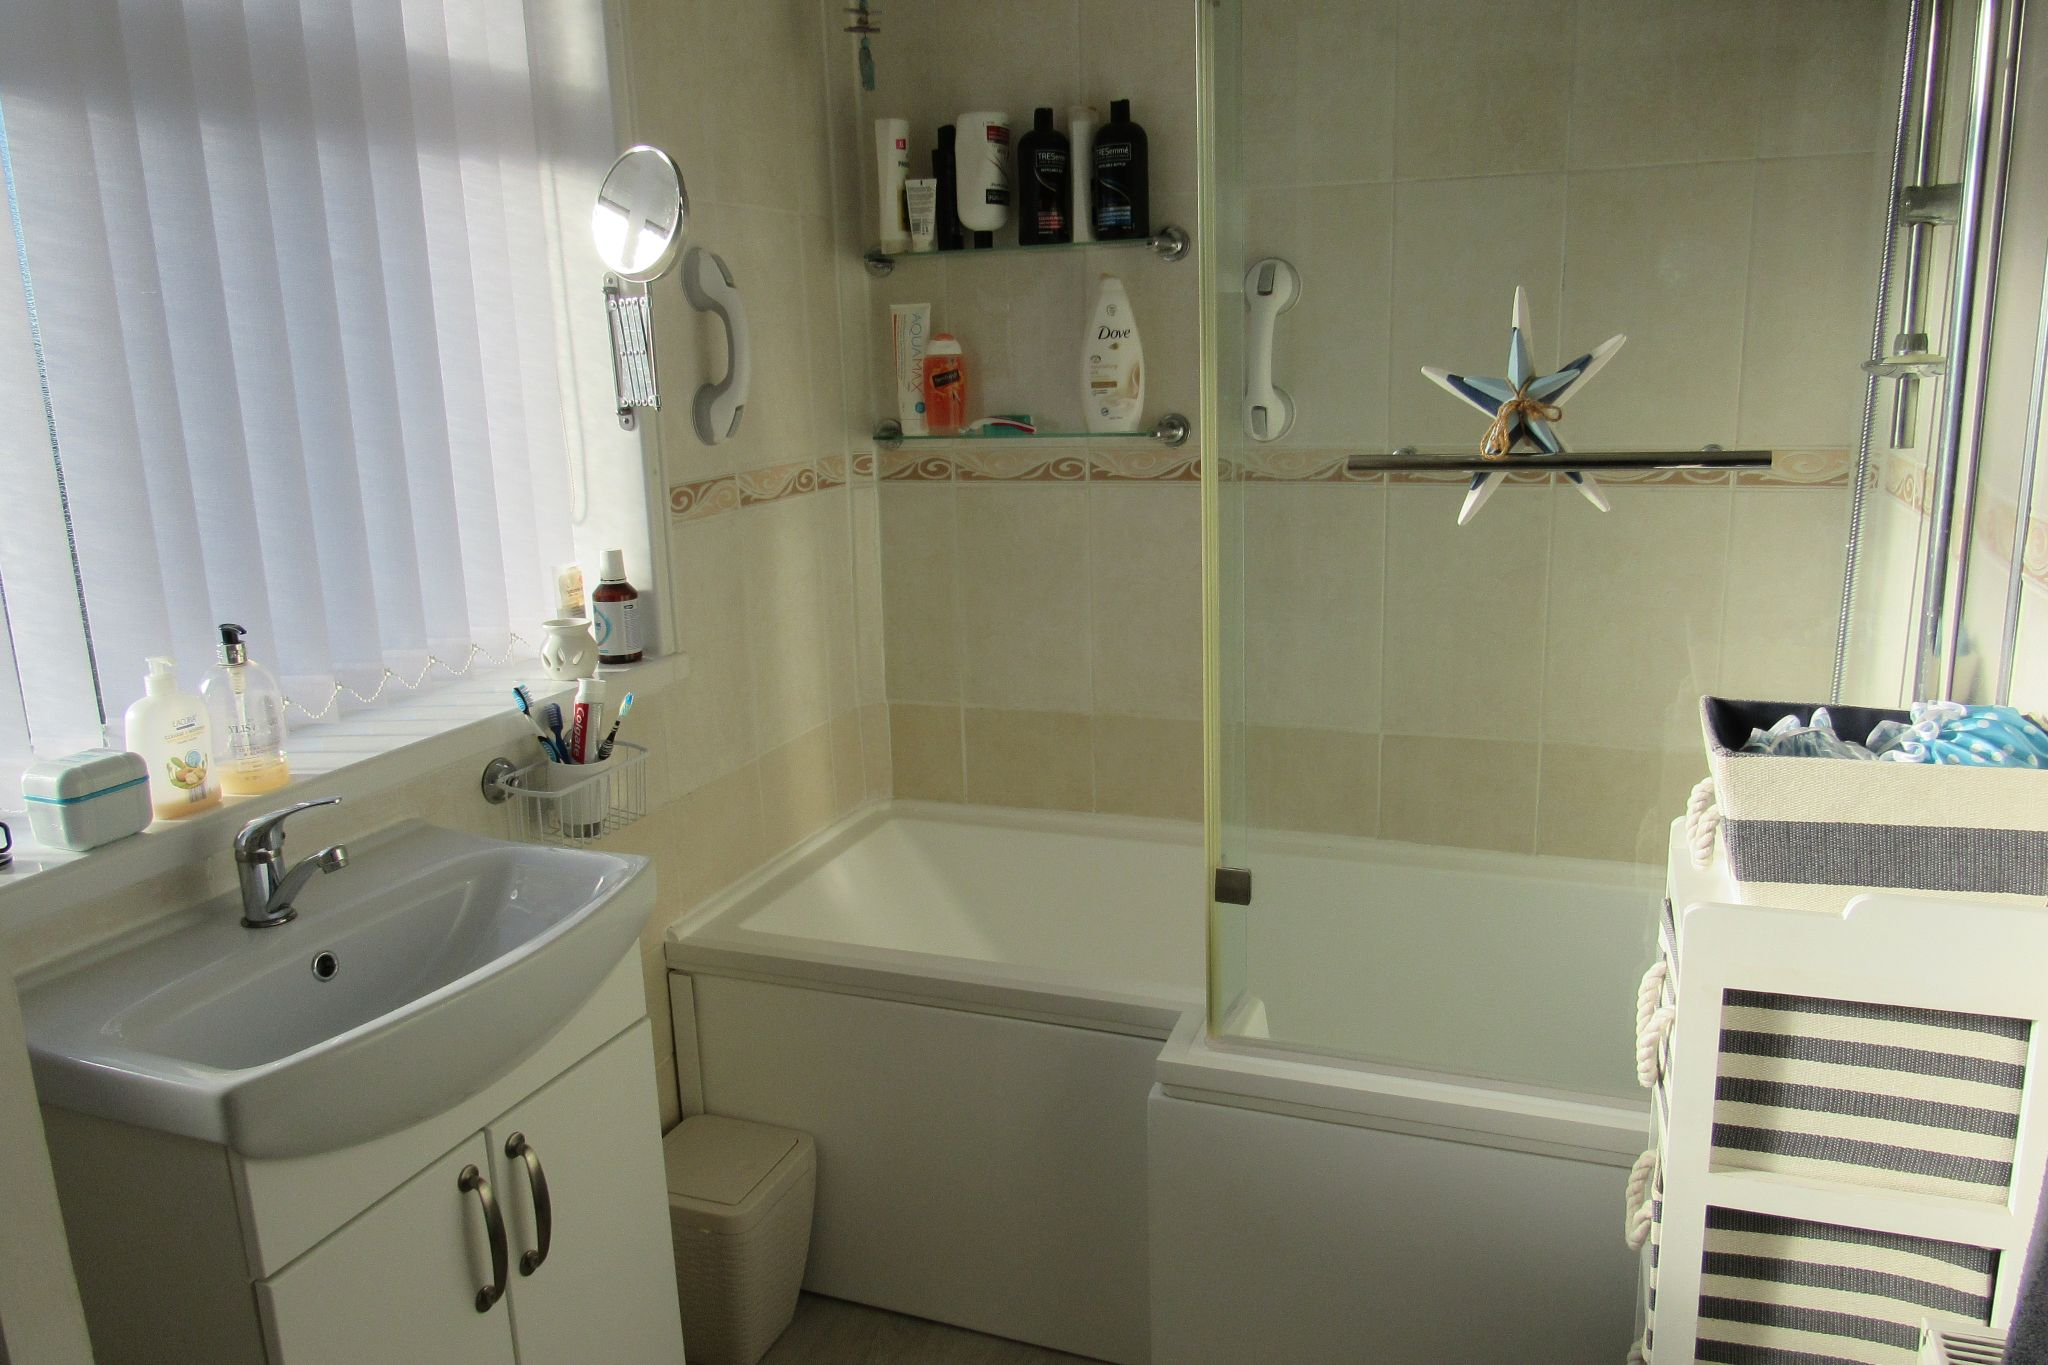 3 bedroom end terraced house SSTC in Manchester - Photograph 13.